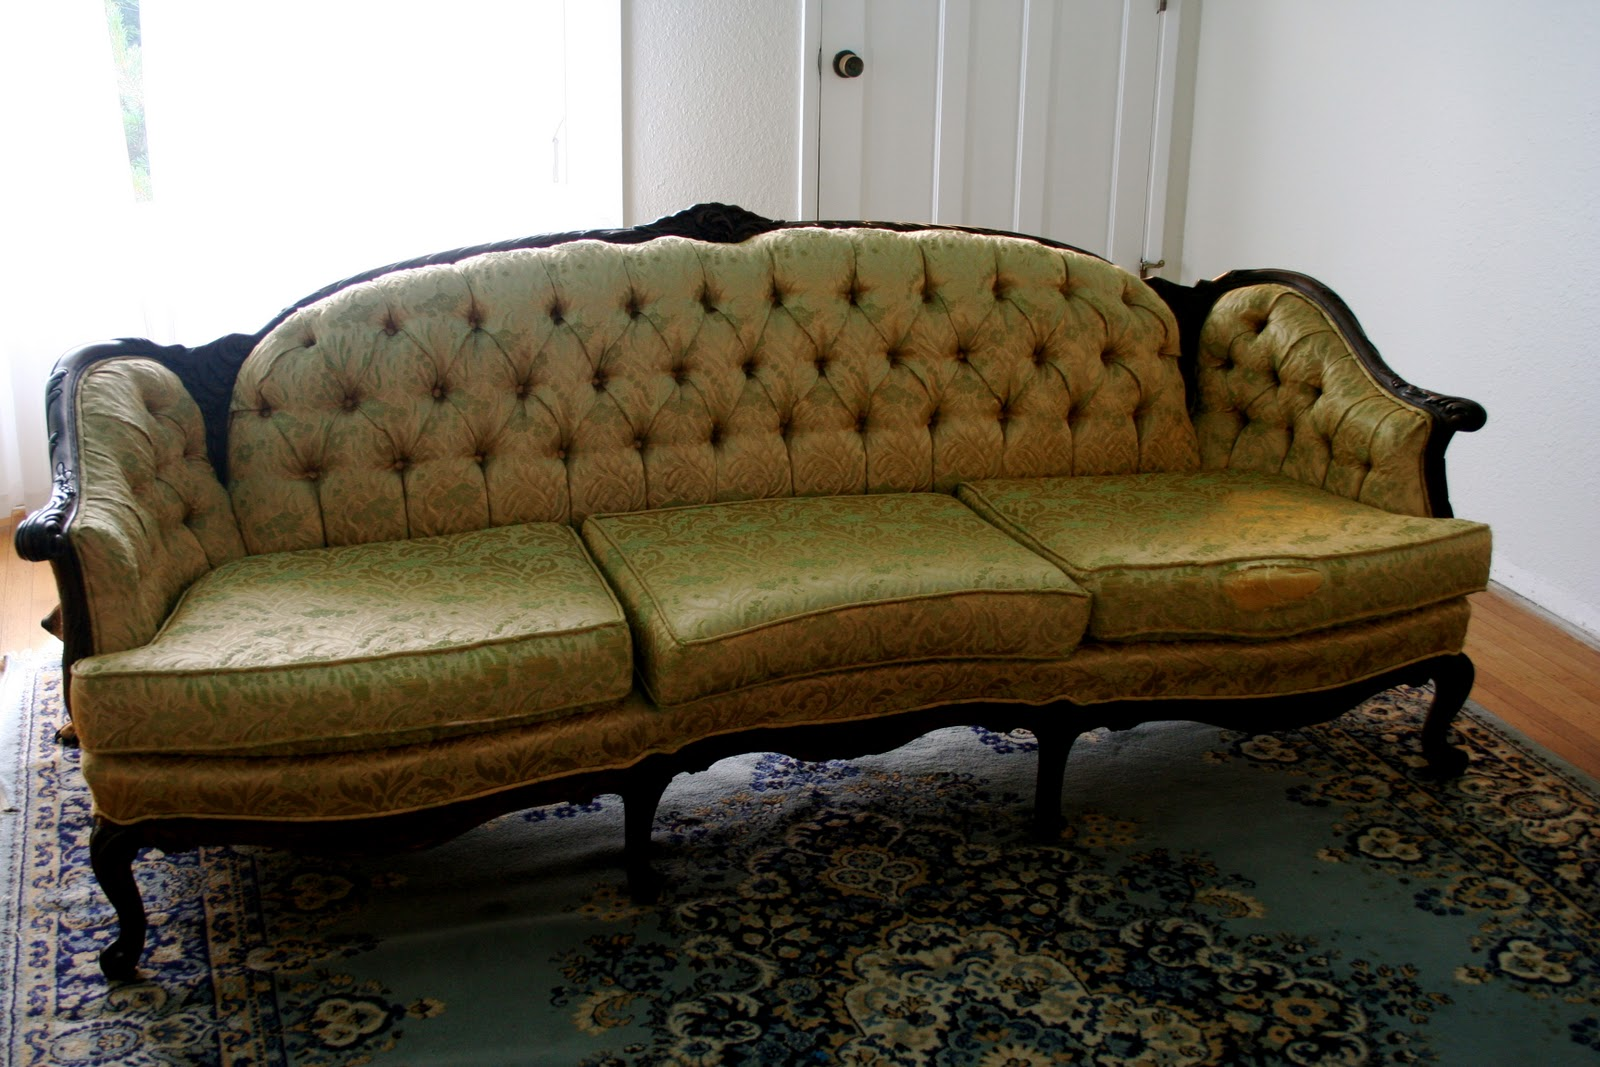 Antike Sofas & Loveseats A Bit Of Sunshine Before And After The Antique Sofa